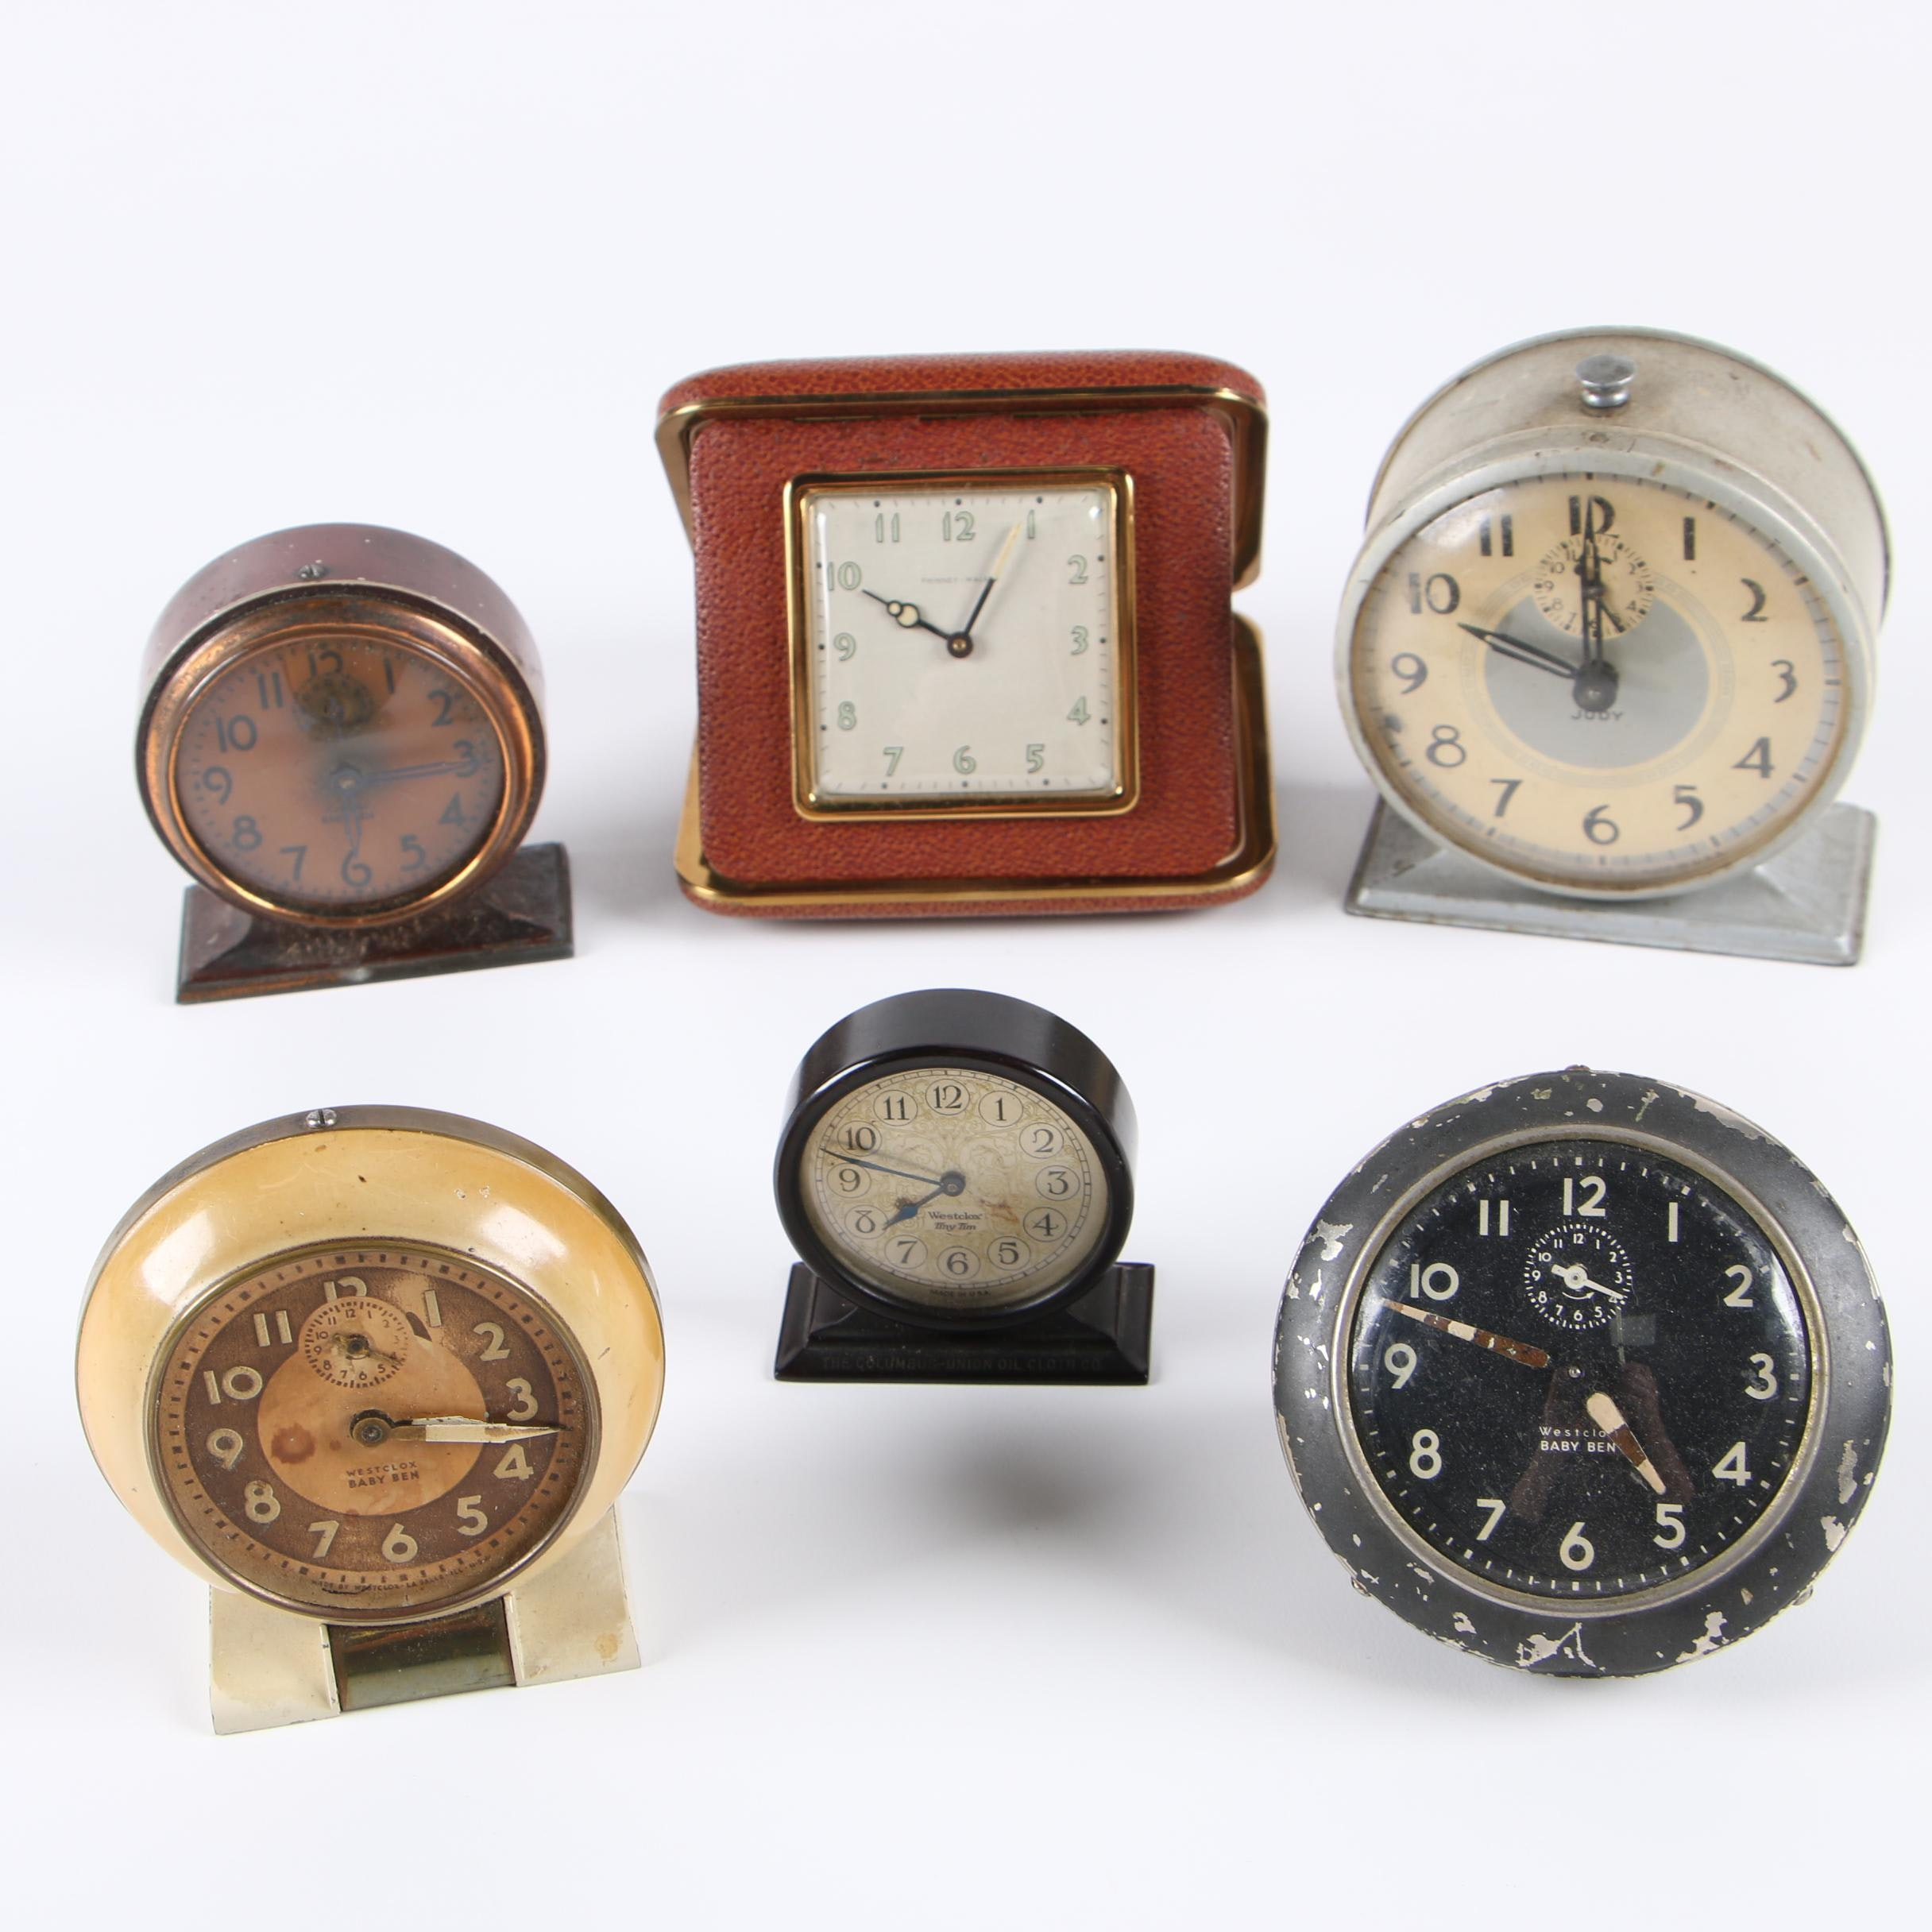 Vintage Desk and Travel Clocks Featuring Baby Ben and Phinney Walker